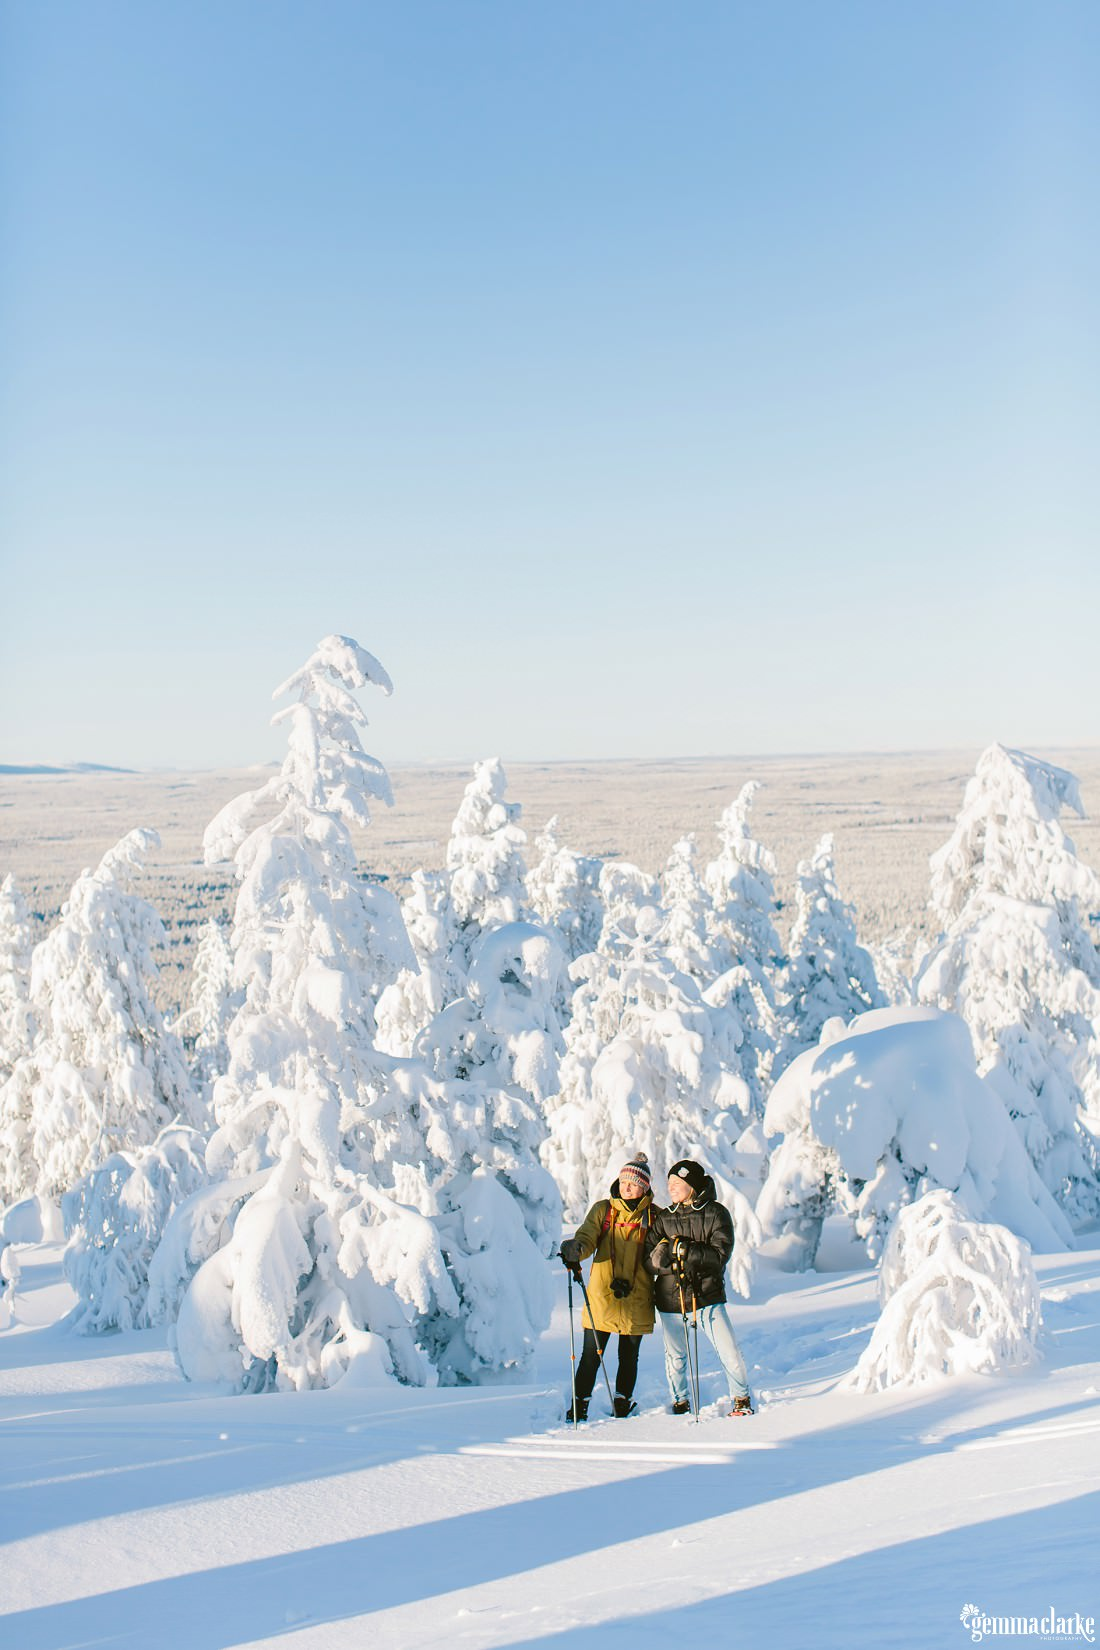 A couple in snow shoes stand in front of trees covered in very thick snow